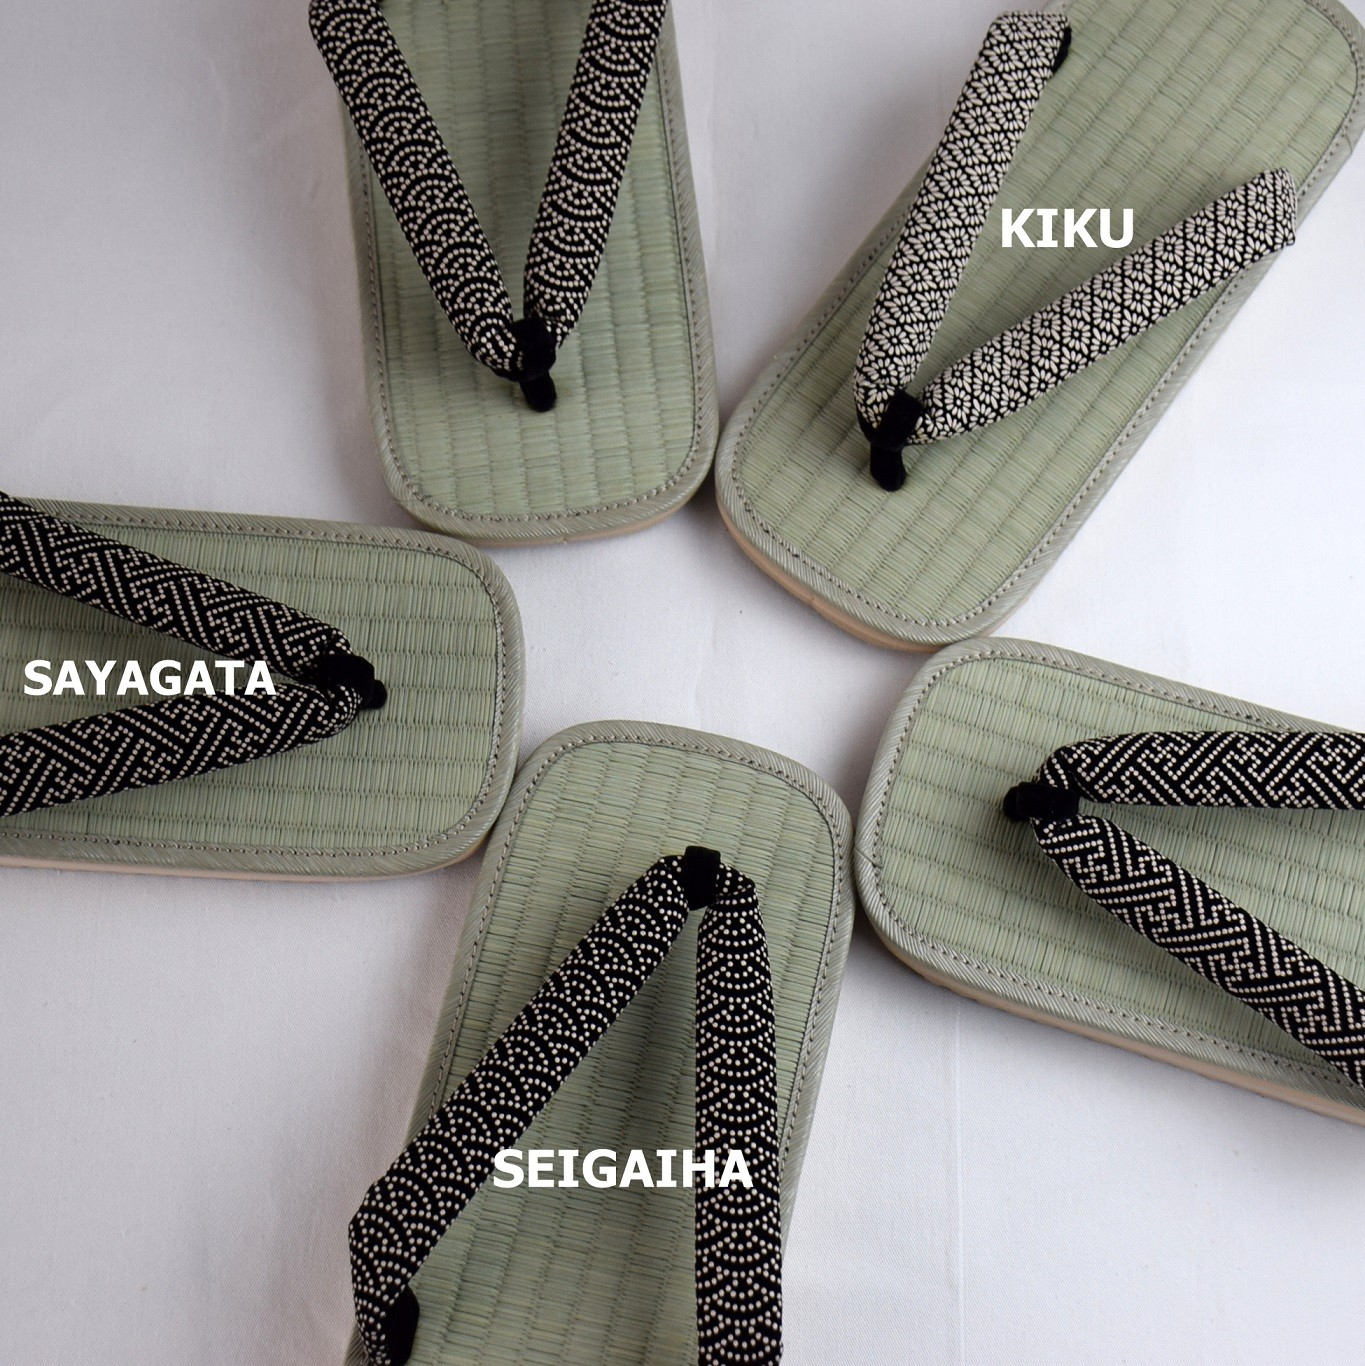 Igusa zori (Japanese traditional sandals) practical and